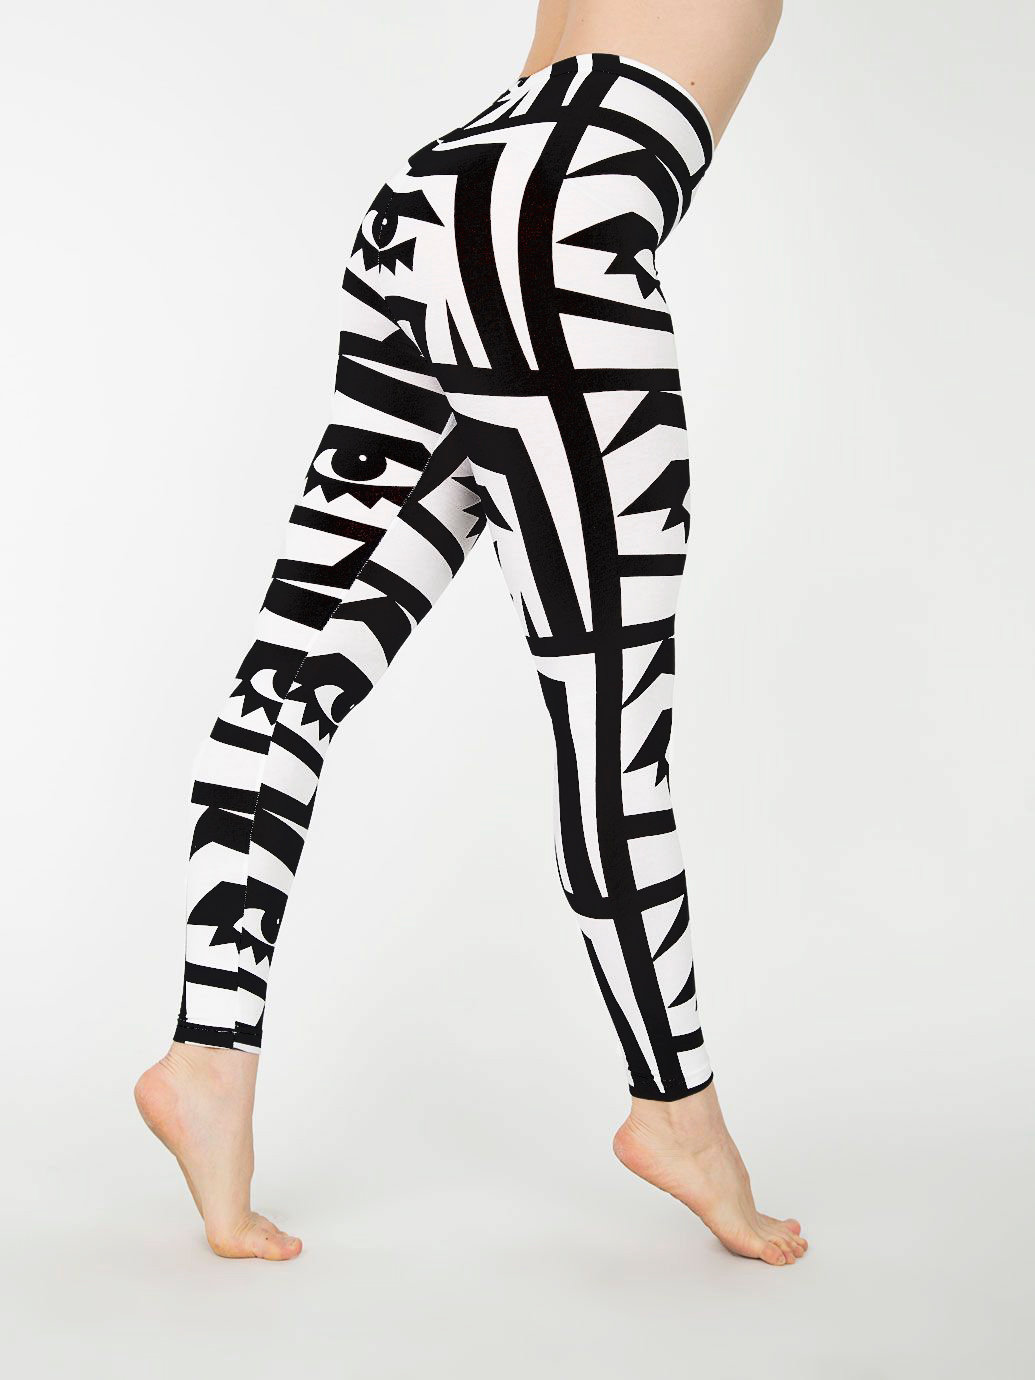 KESH X American Apparel Cotton Spandex Legging | American Apparel